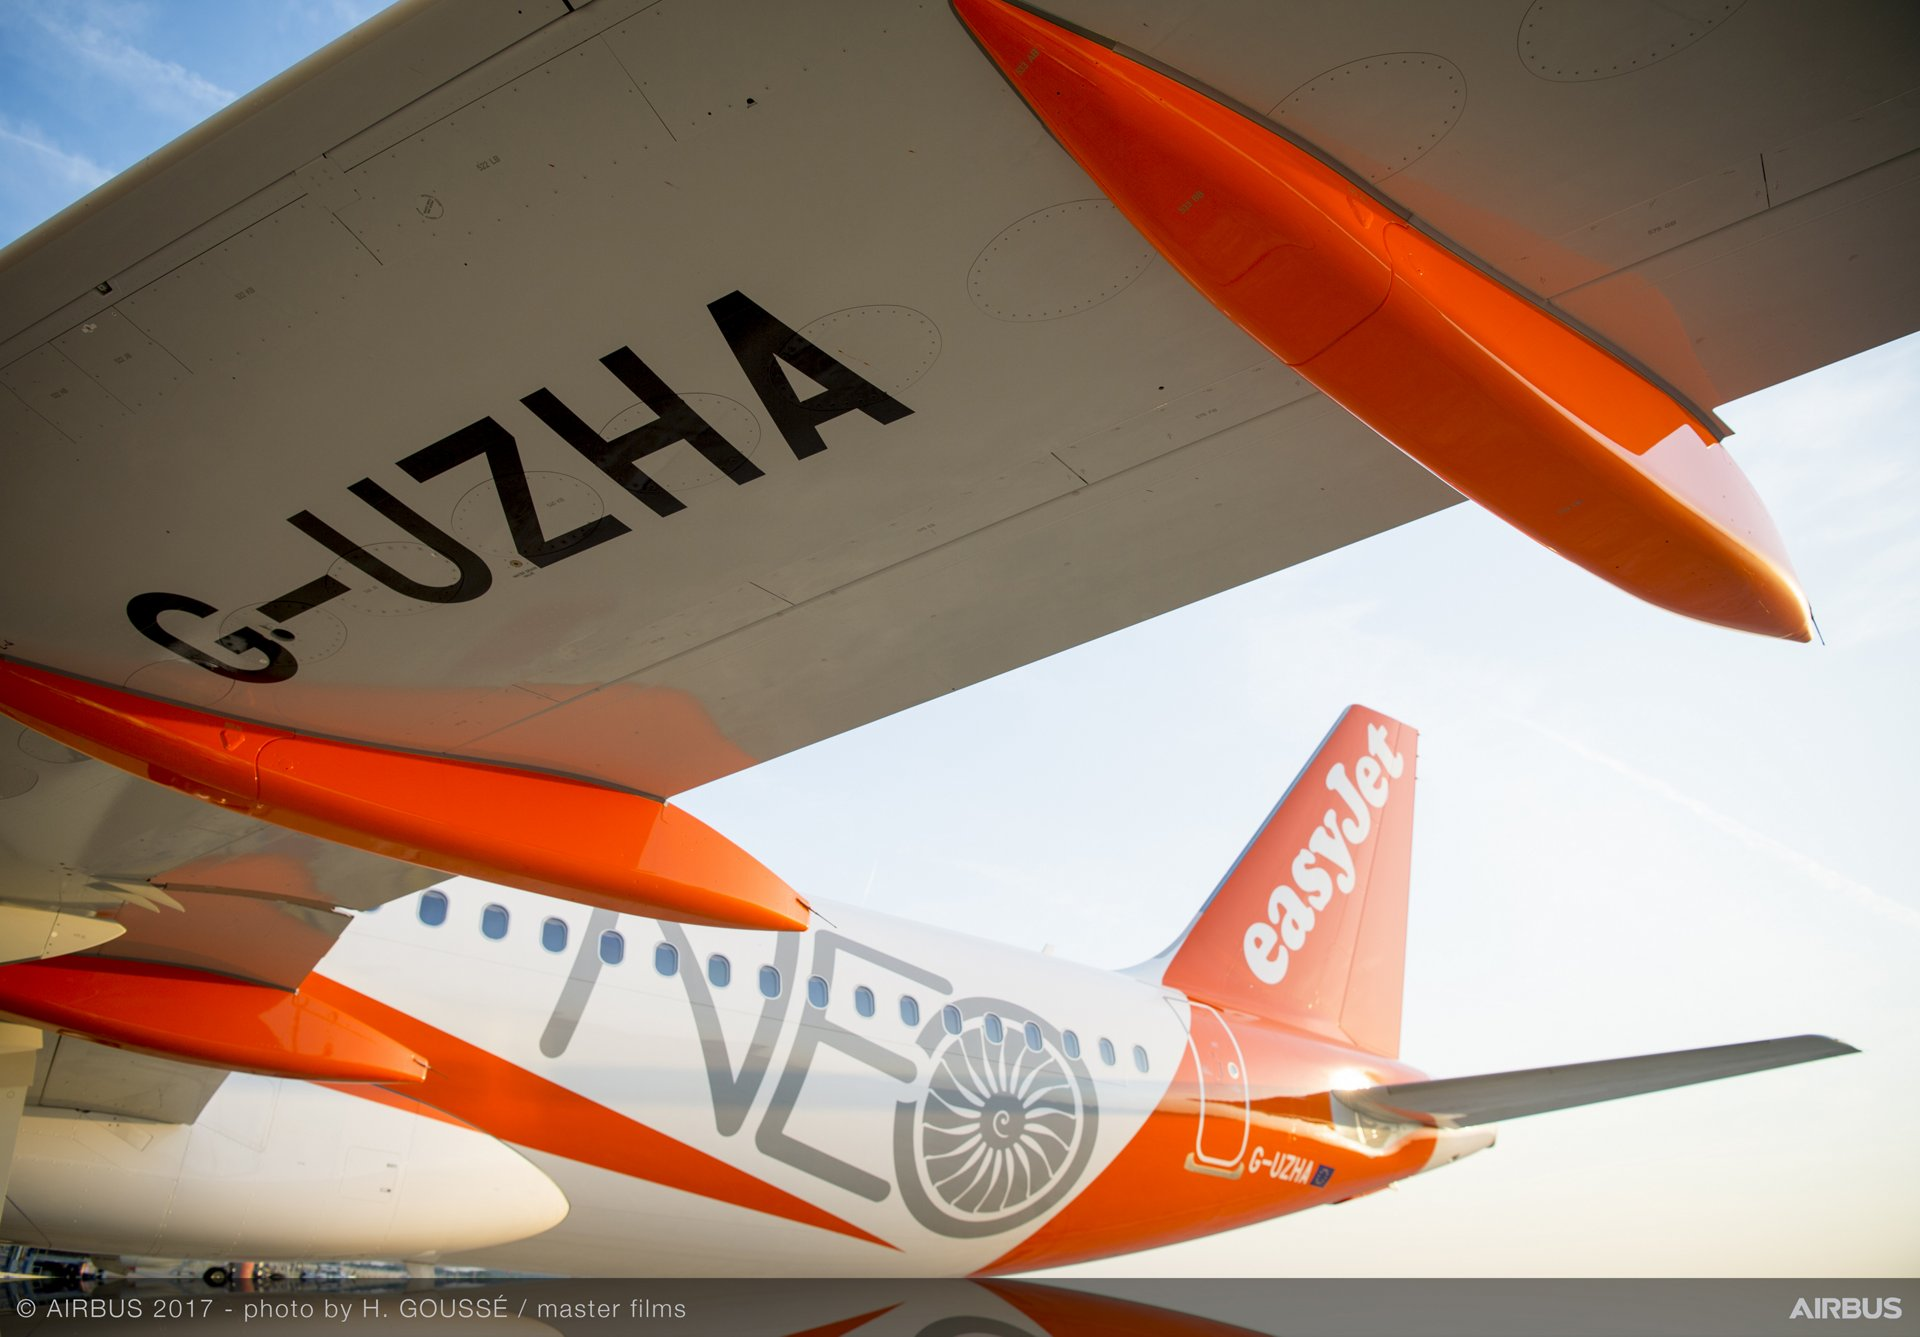 easyJet_First A320neo delivery 7